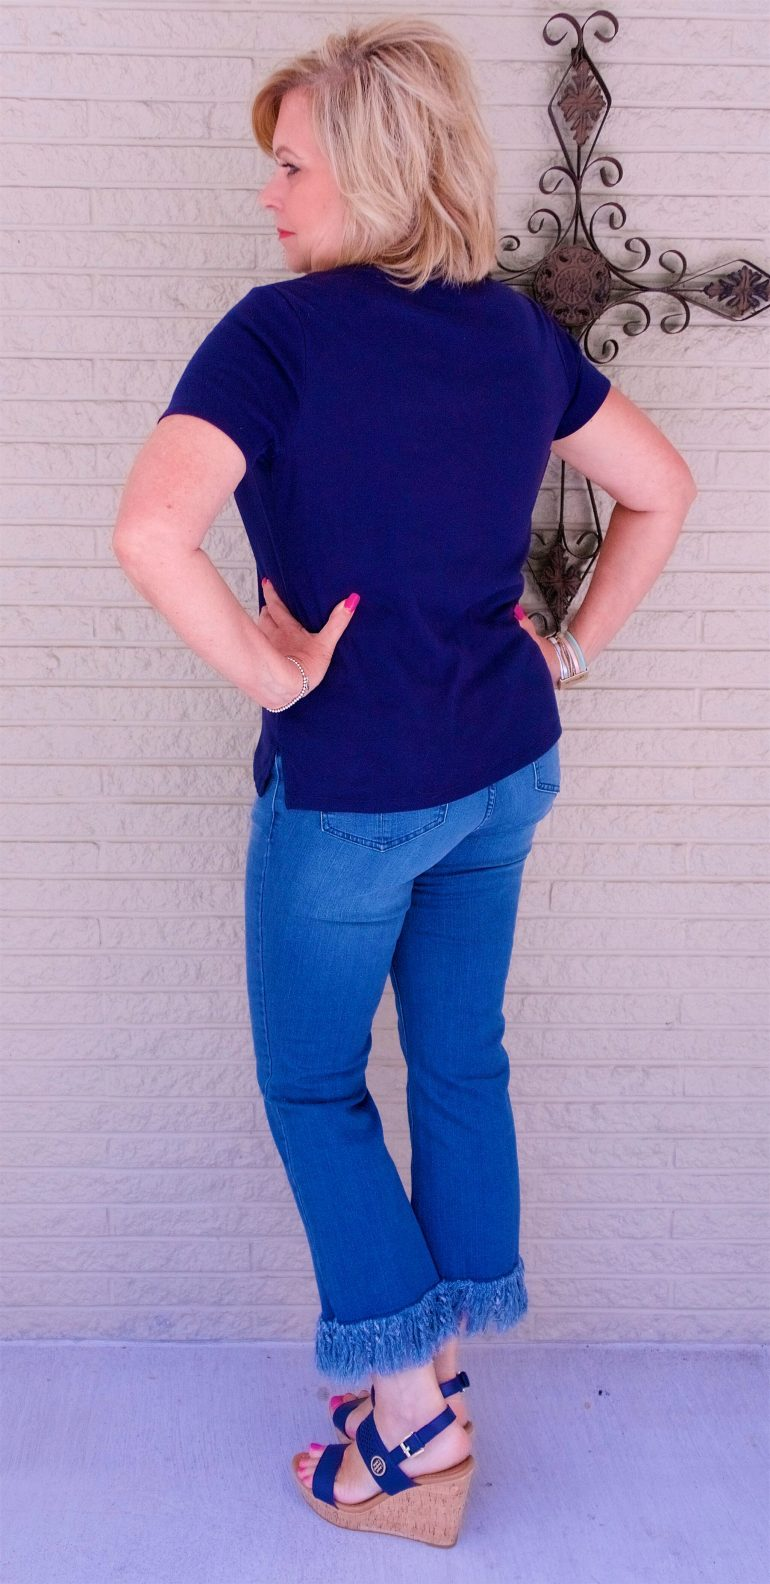 50 IS NOT OLD | HOW MANY OUTFITS CAN YOU MAKE WITH A T-SHIRT | FASHION OVER 40